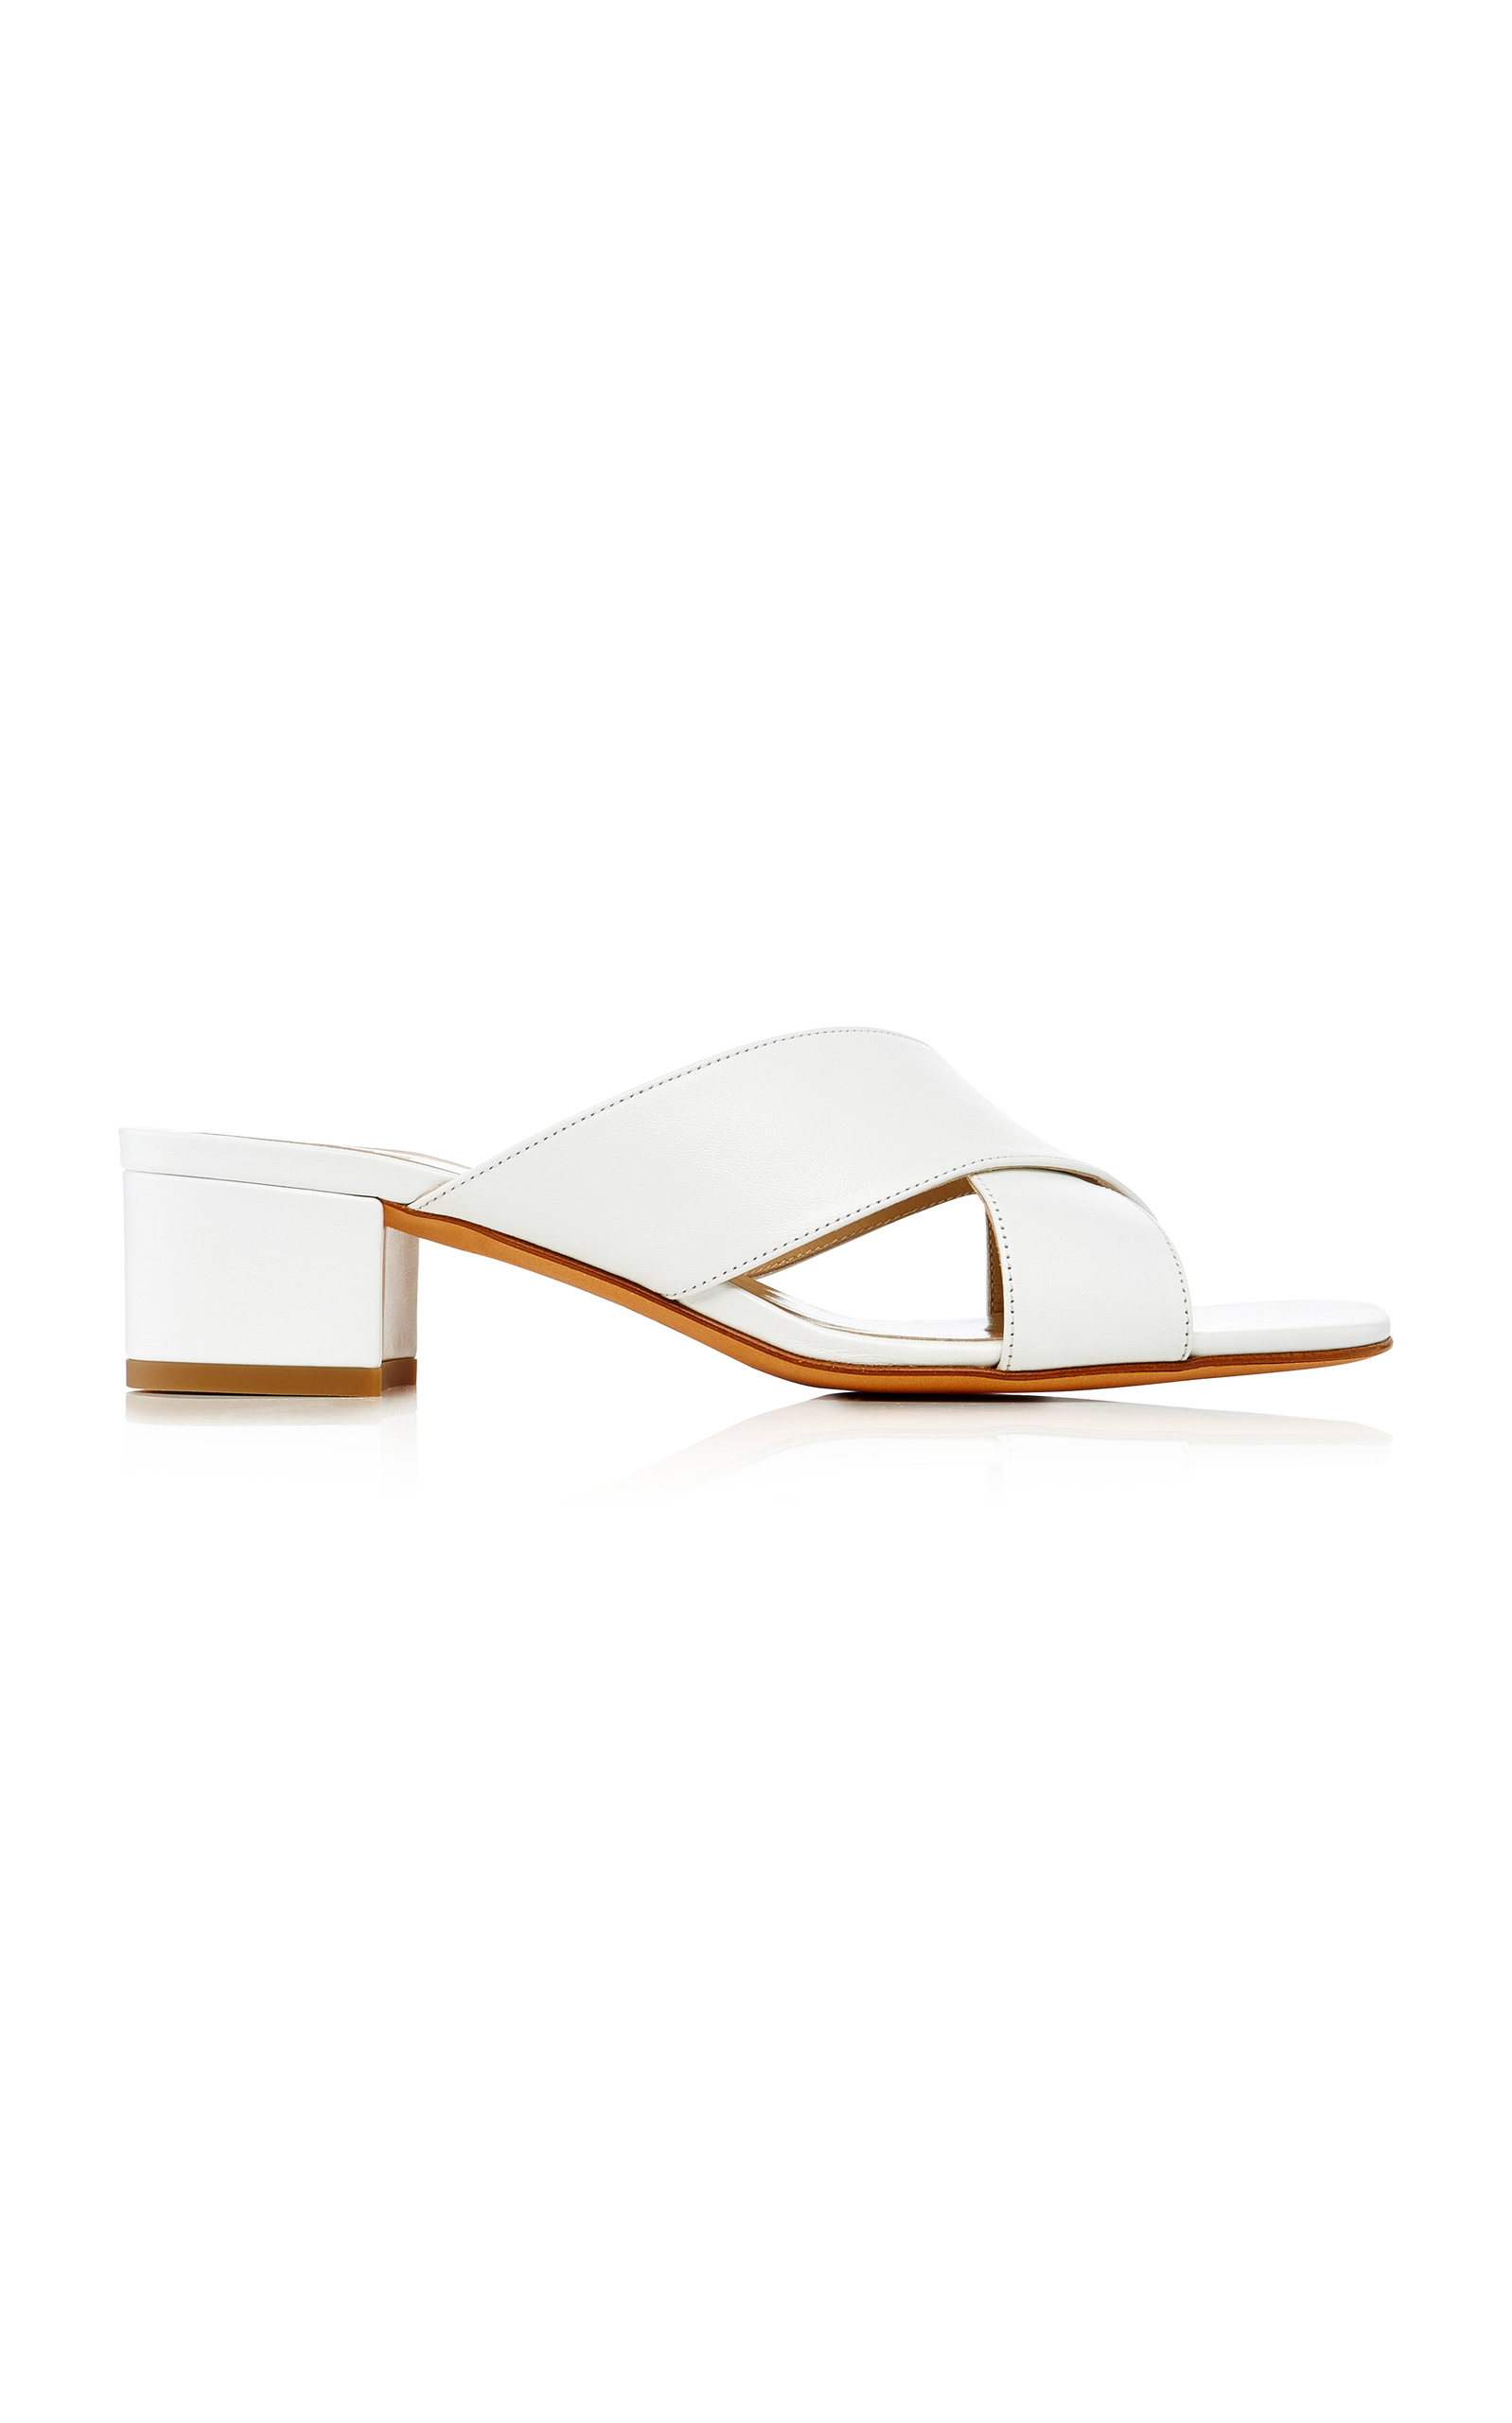 MARYAM NASSIR ZADEH Lauren Patent-Leather Slides